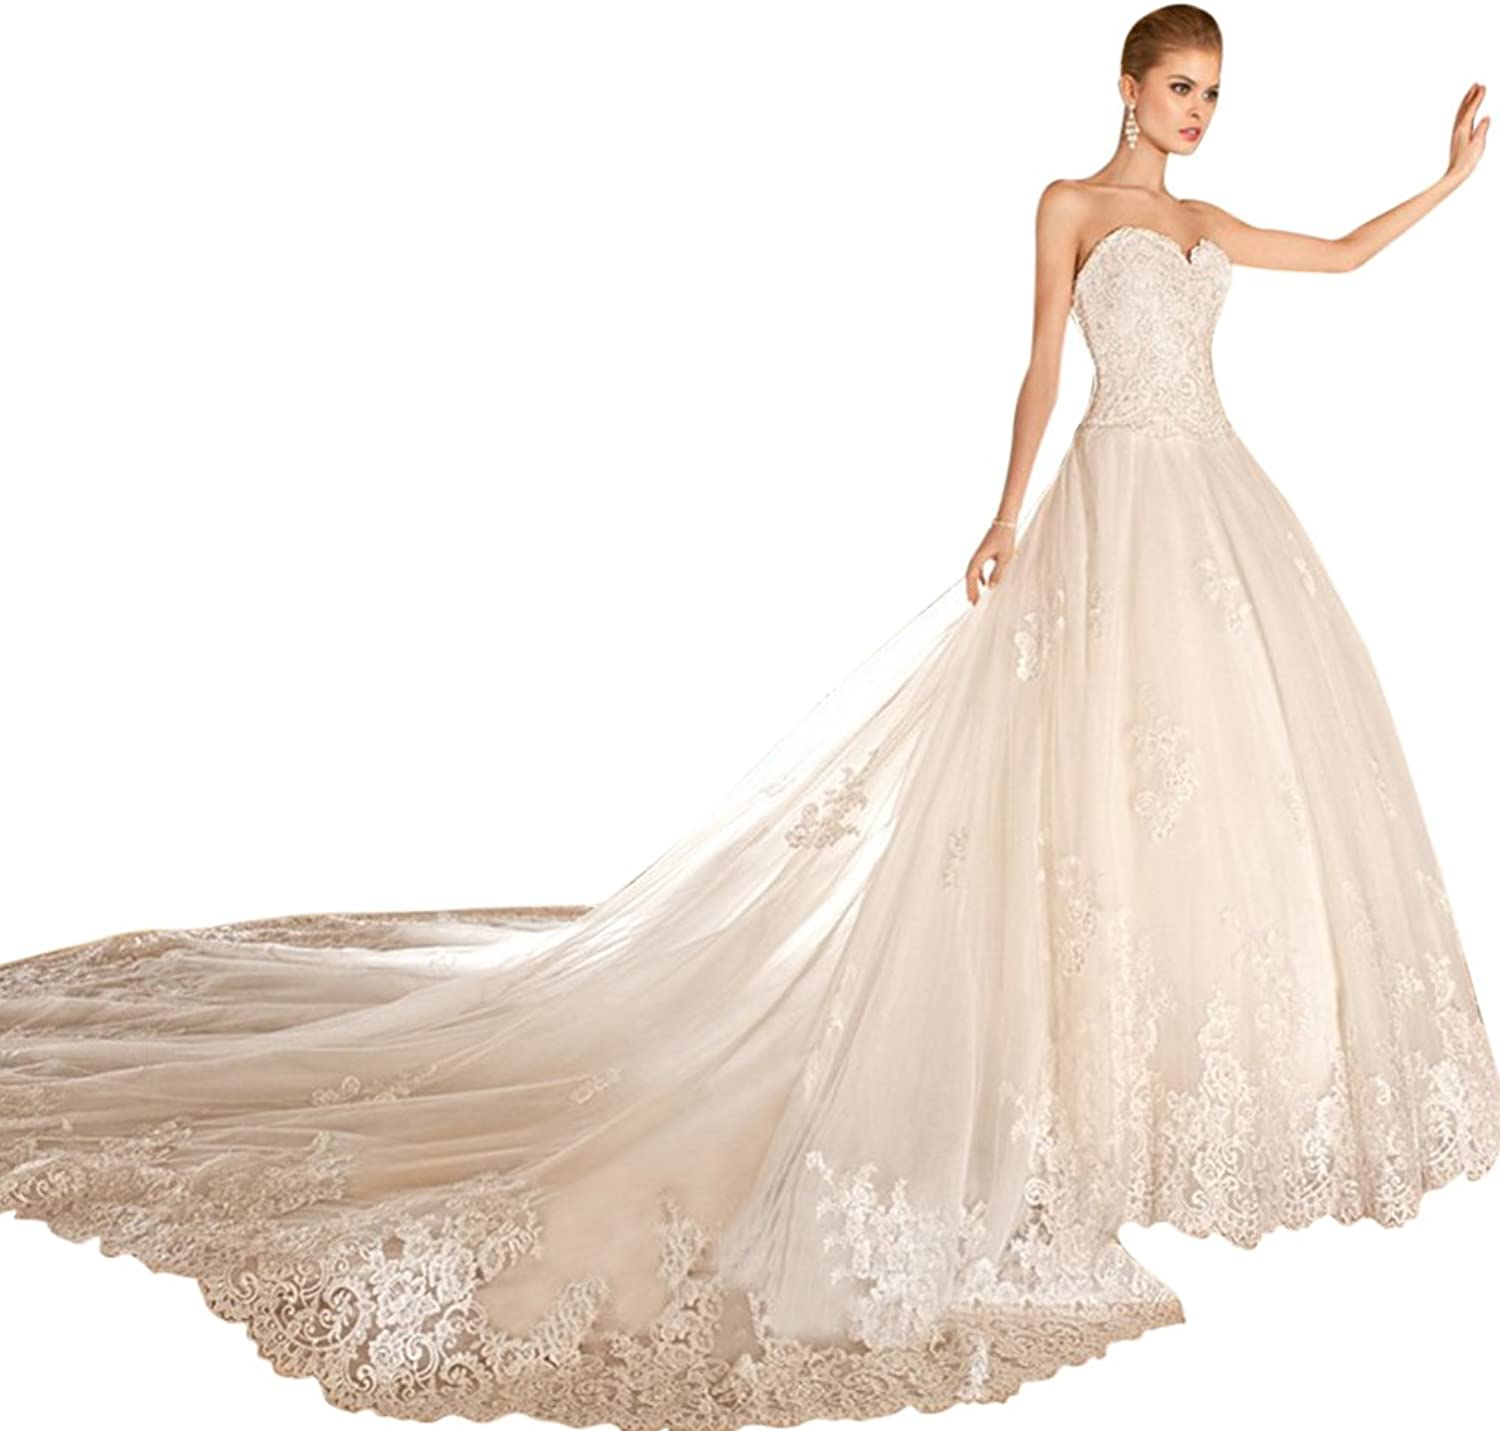 JoyVany Sexy Backless Lace Ball Gown Wedding Dress Tulle Bridal Gowns with Train